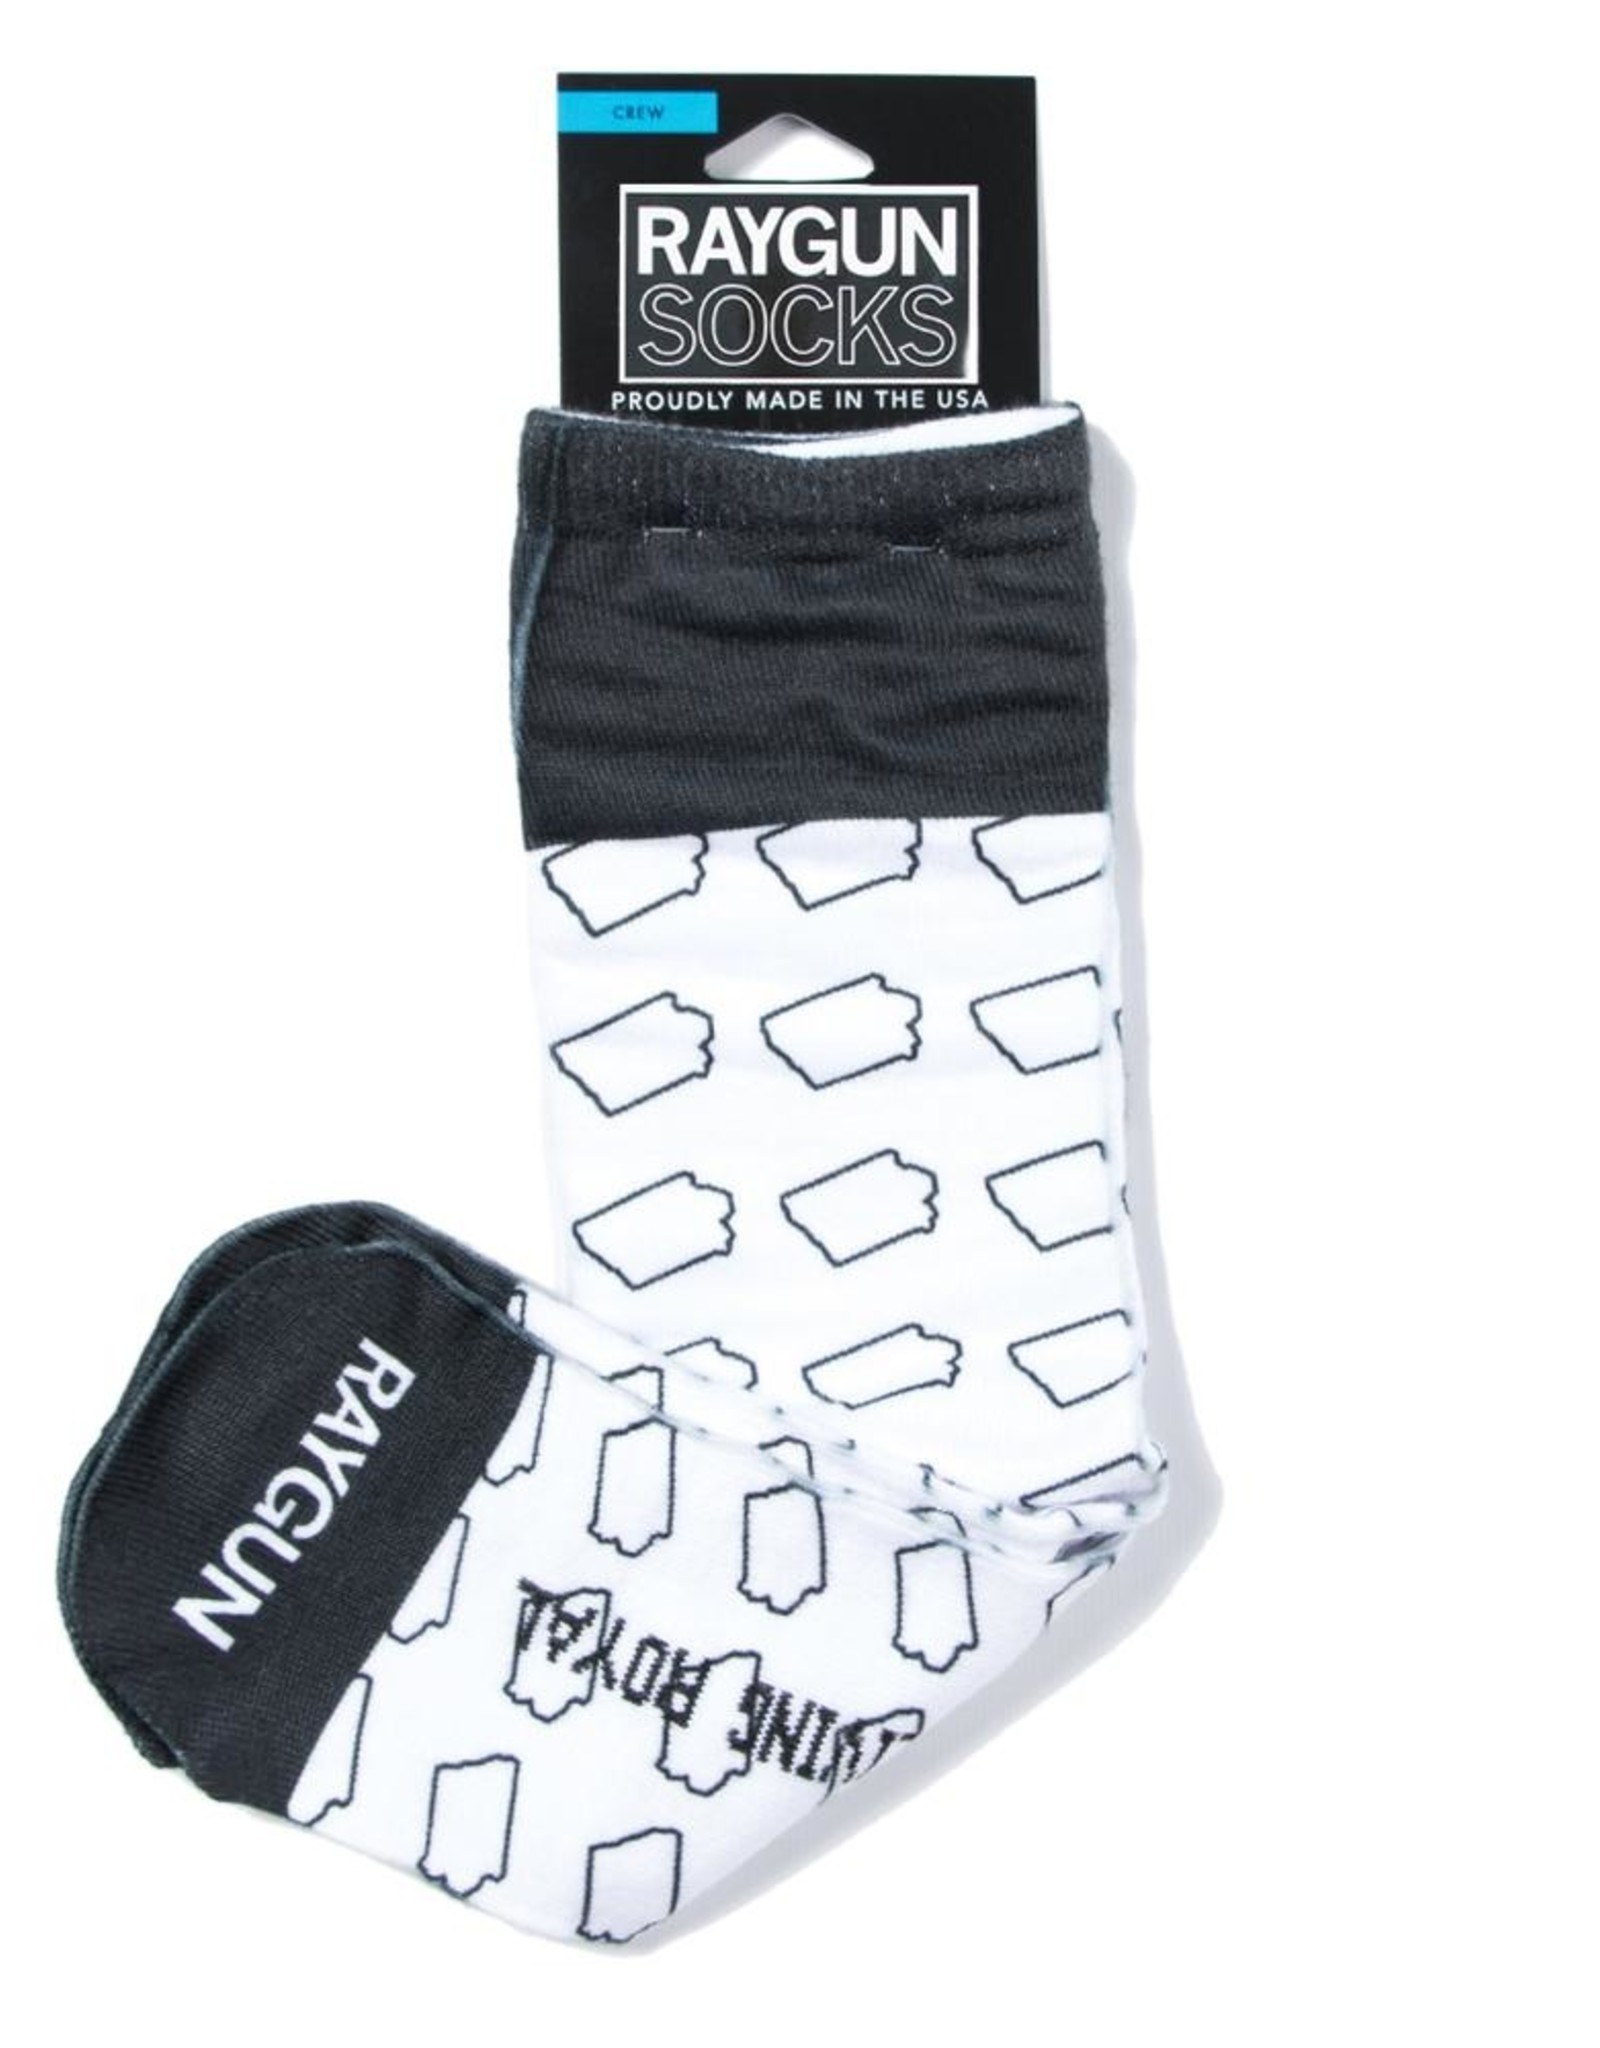 Raygun Outline Iowa Socks